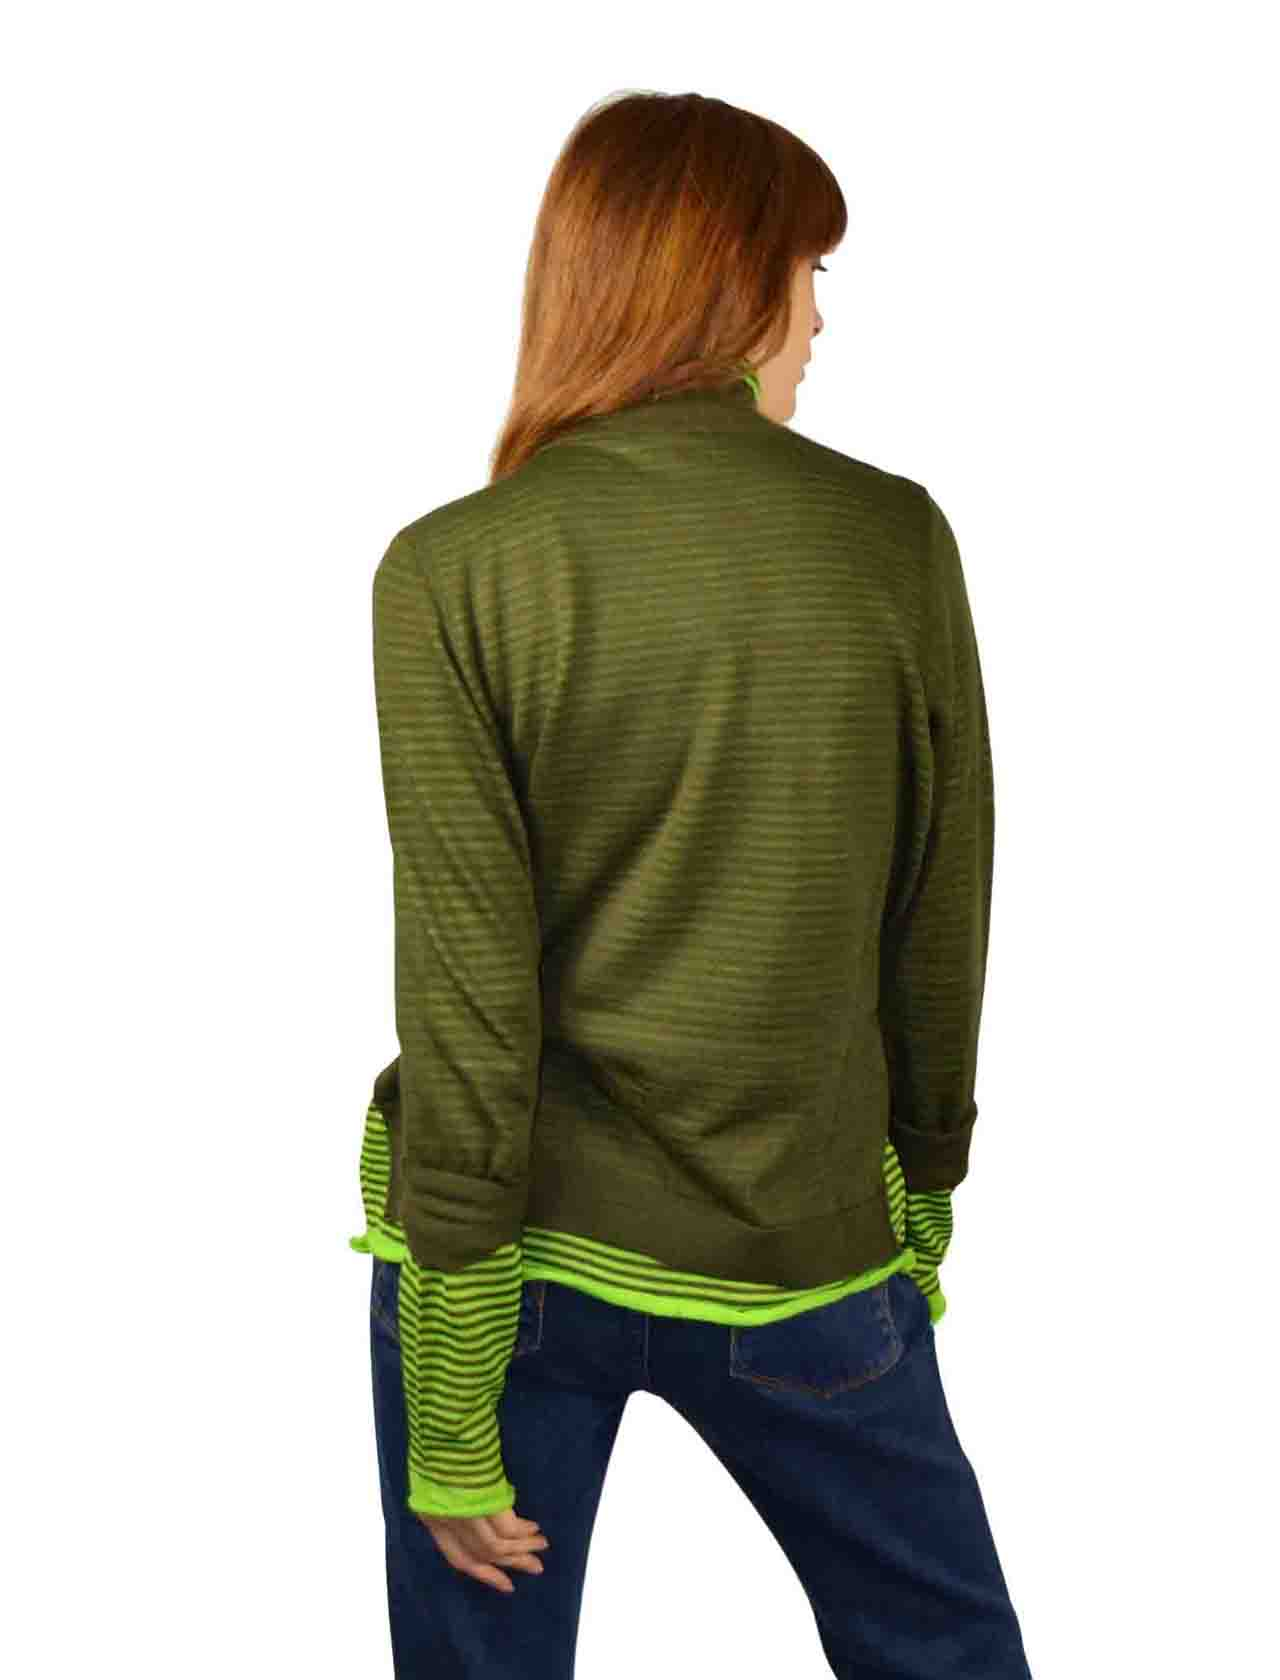 Women's Green Sweater Maliparmi | Knitwear | JQ48427047360C60